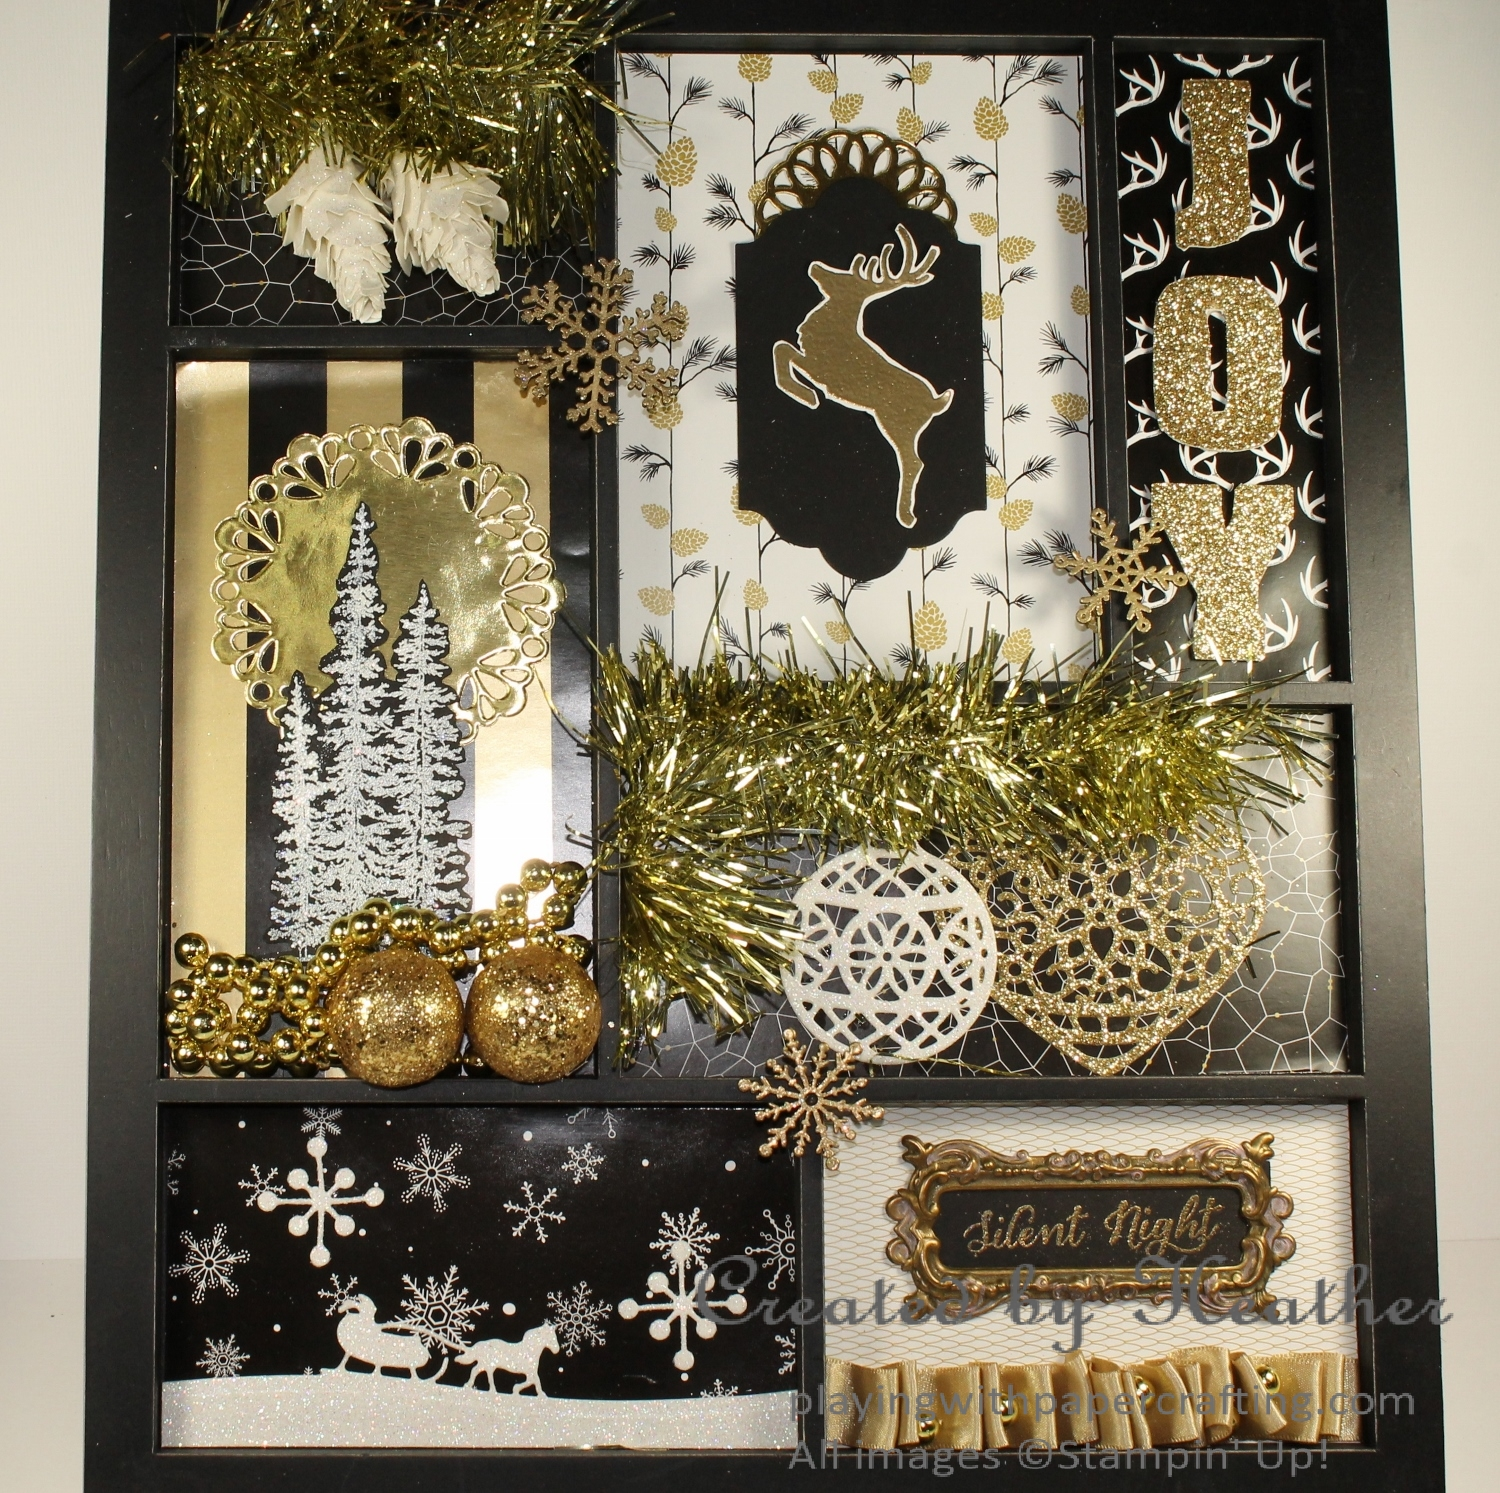 Playing with Papercrafting: Winter Wonderland Printer's Tray